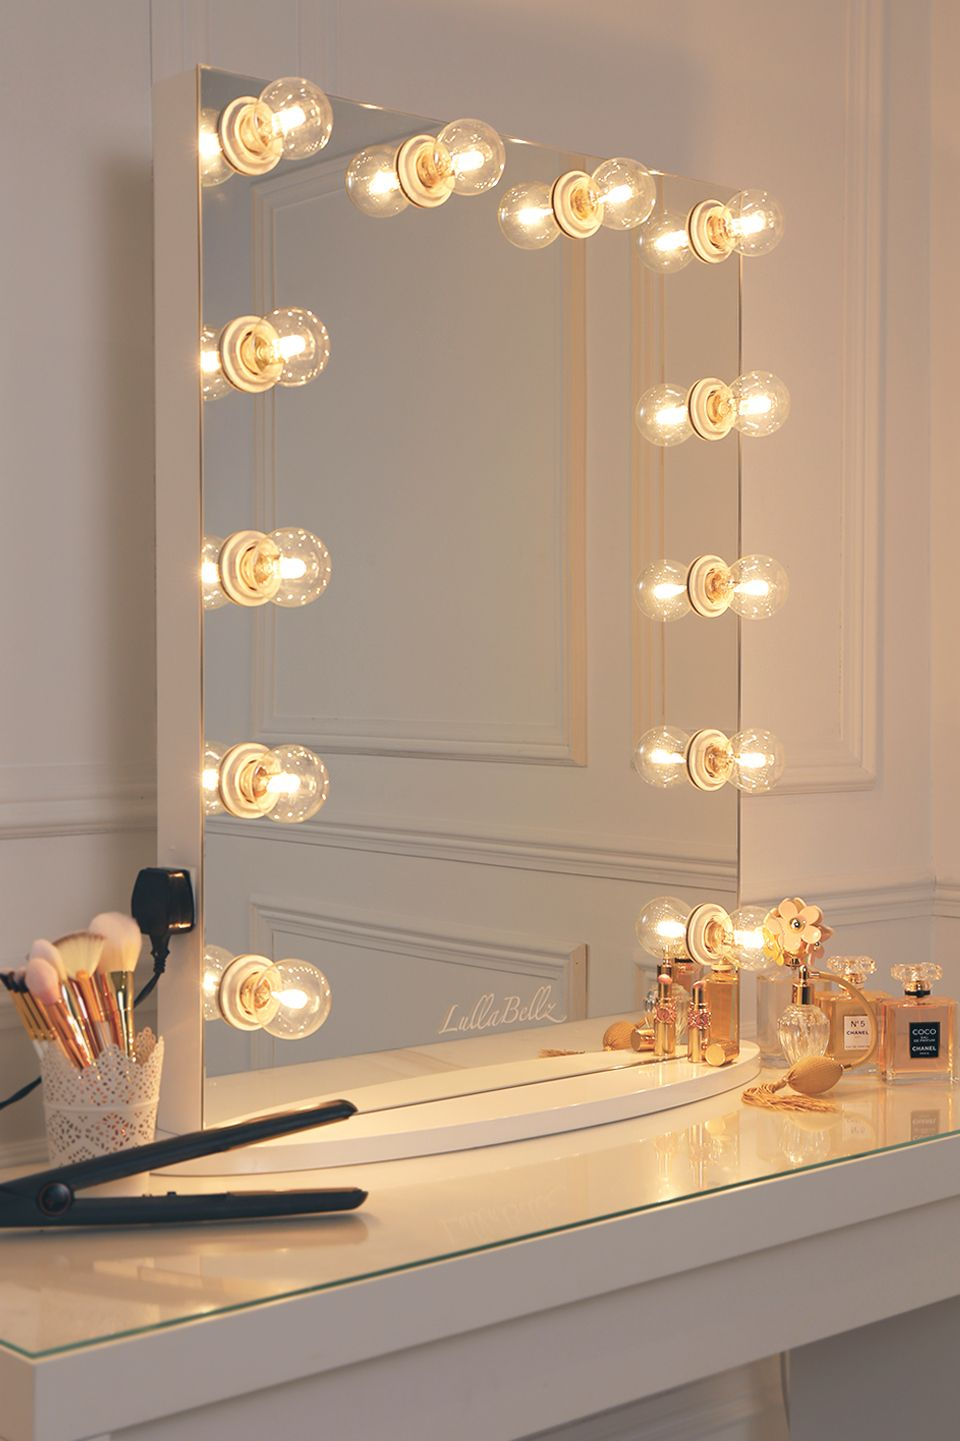 Vanity Mirror With A Pure White Finish Framed With Clear Golf Size Light Bulbs Diy Vanity Mirror Hollywood Vanity Mirror Vanity Light Bulbs